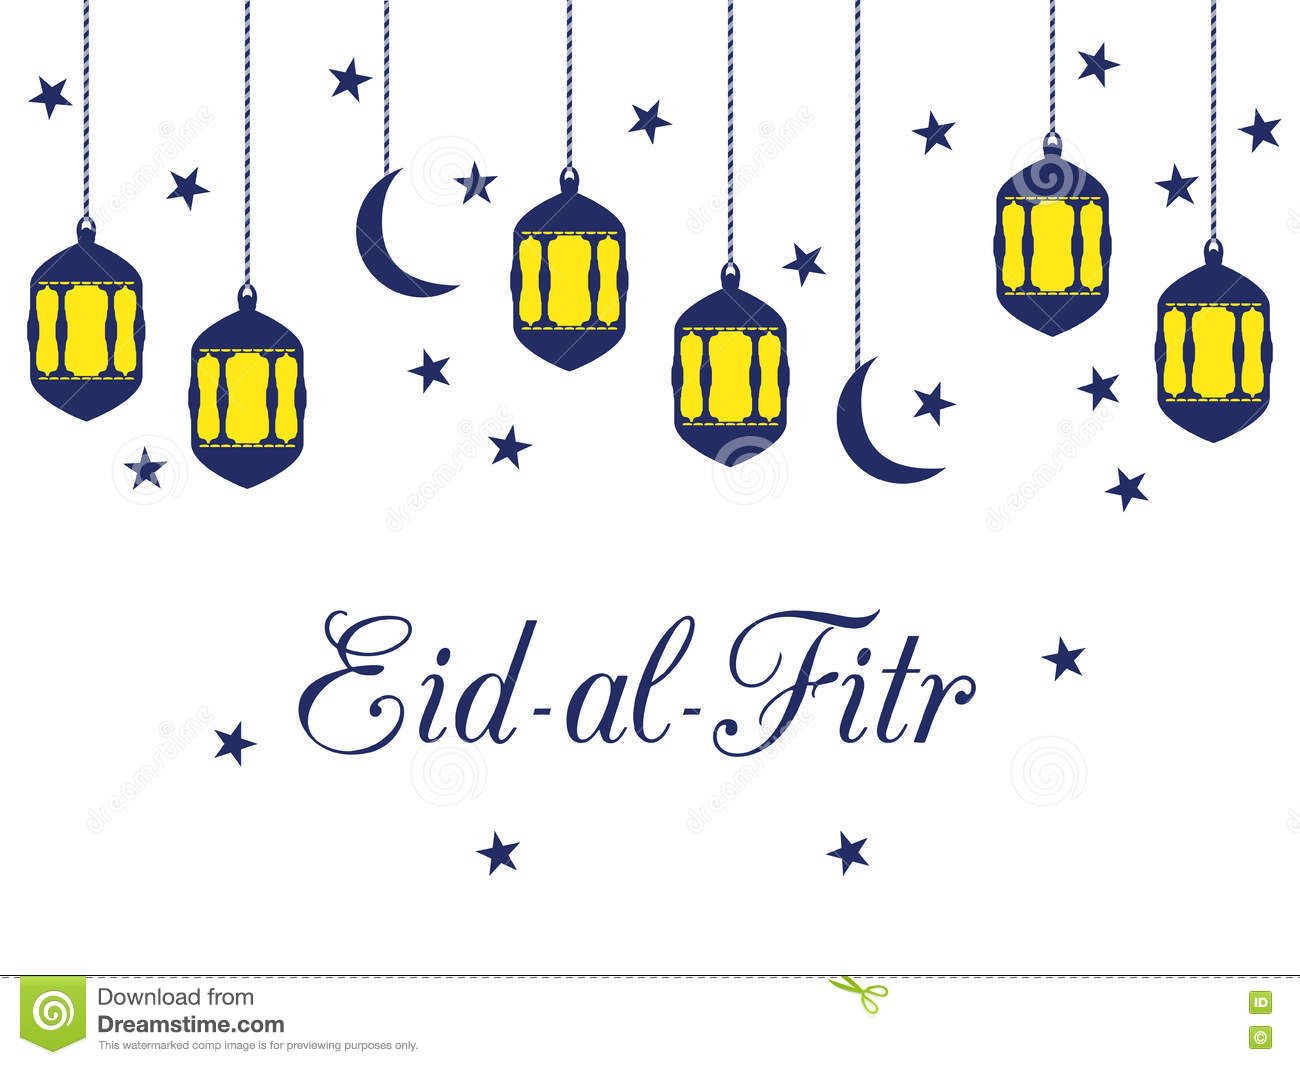 What is Eid al Fitr and Why Do Muslims Celebrate It?